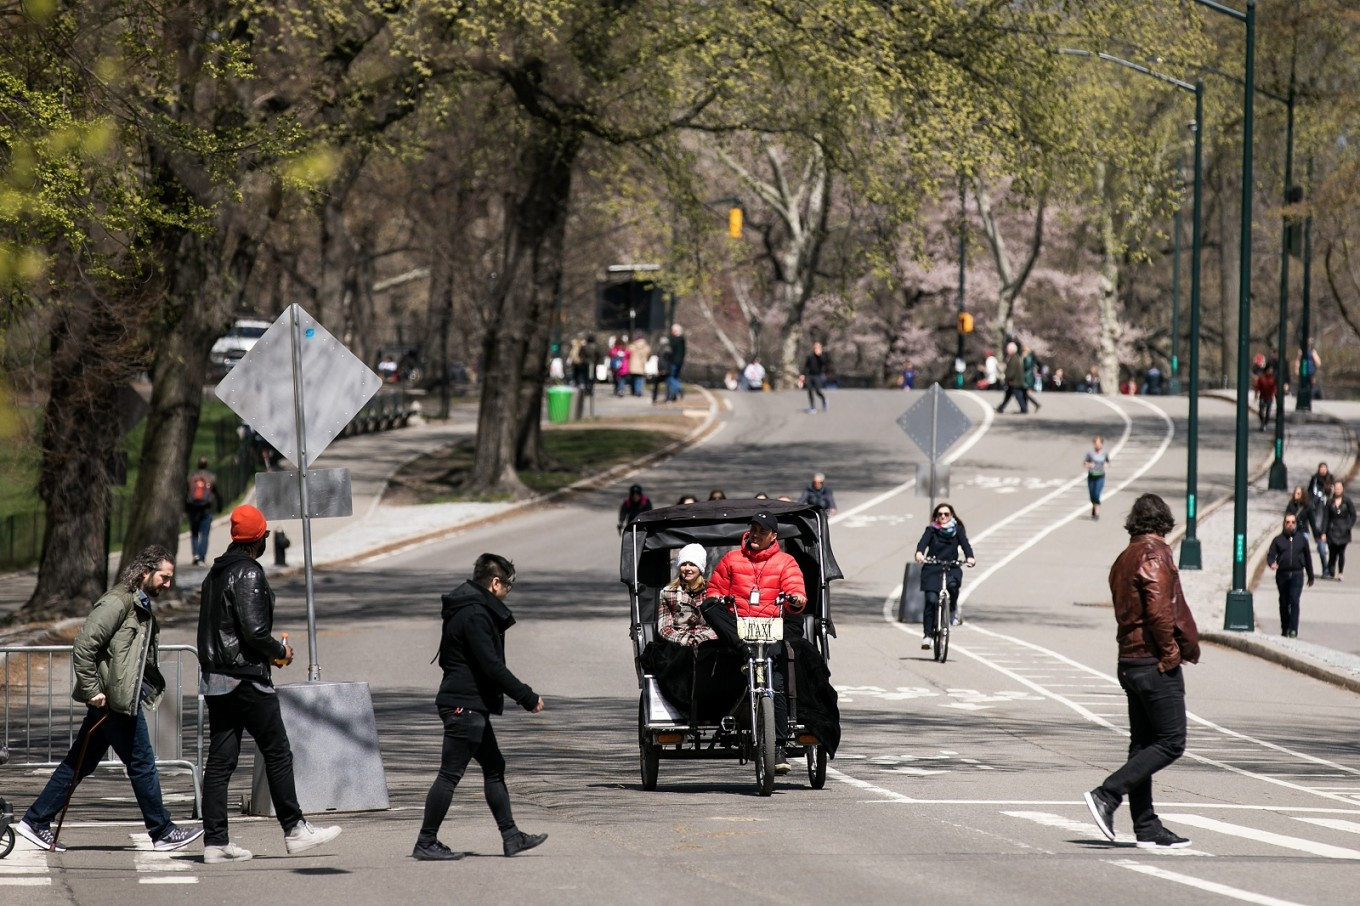 New York's Central Park goes officially car-free